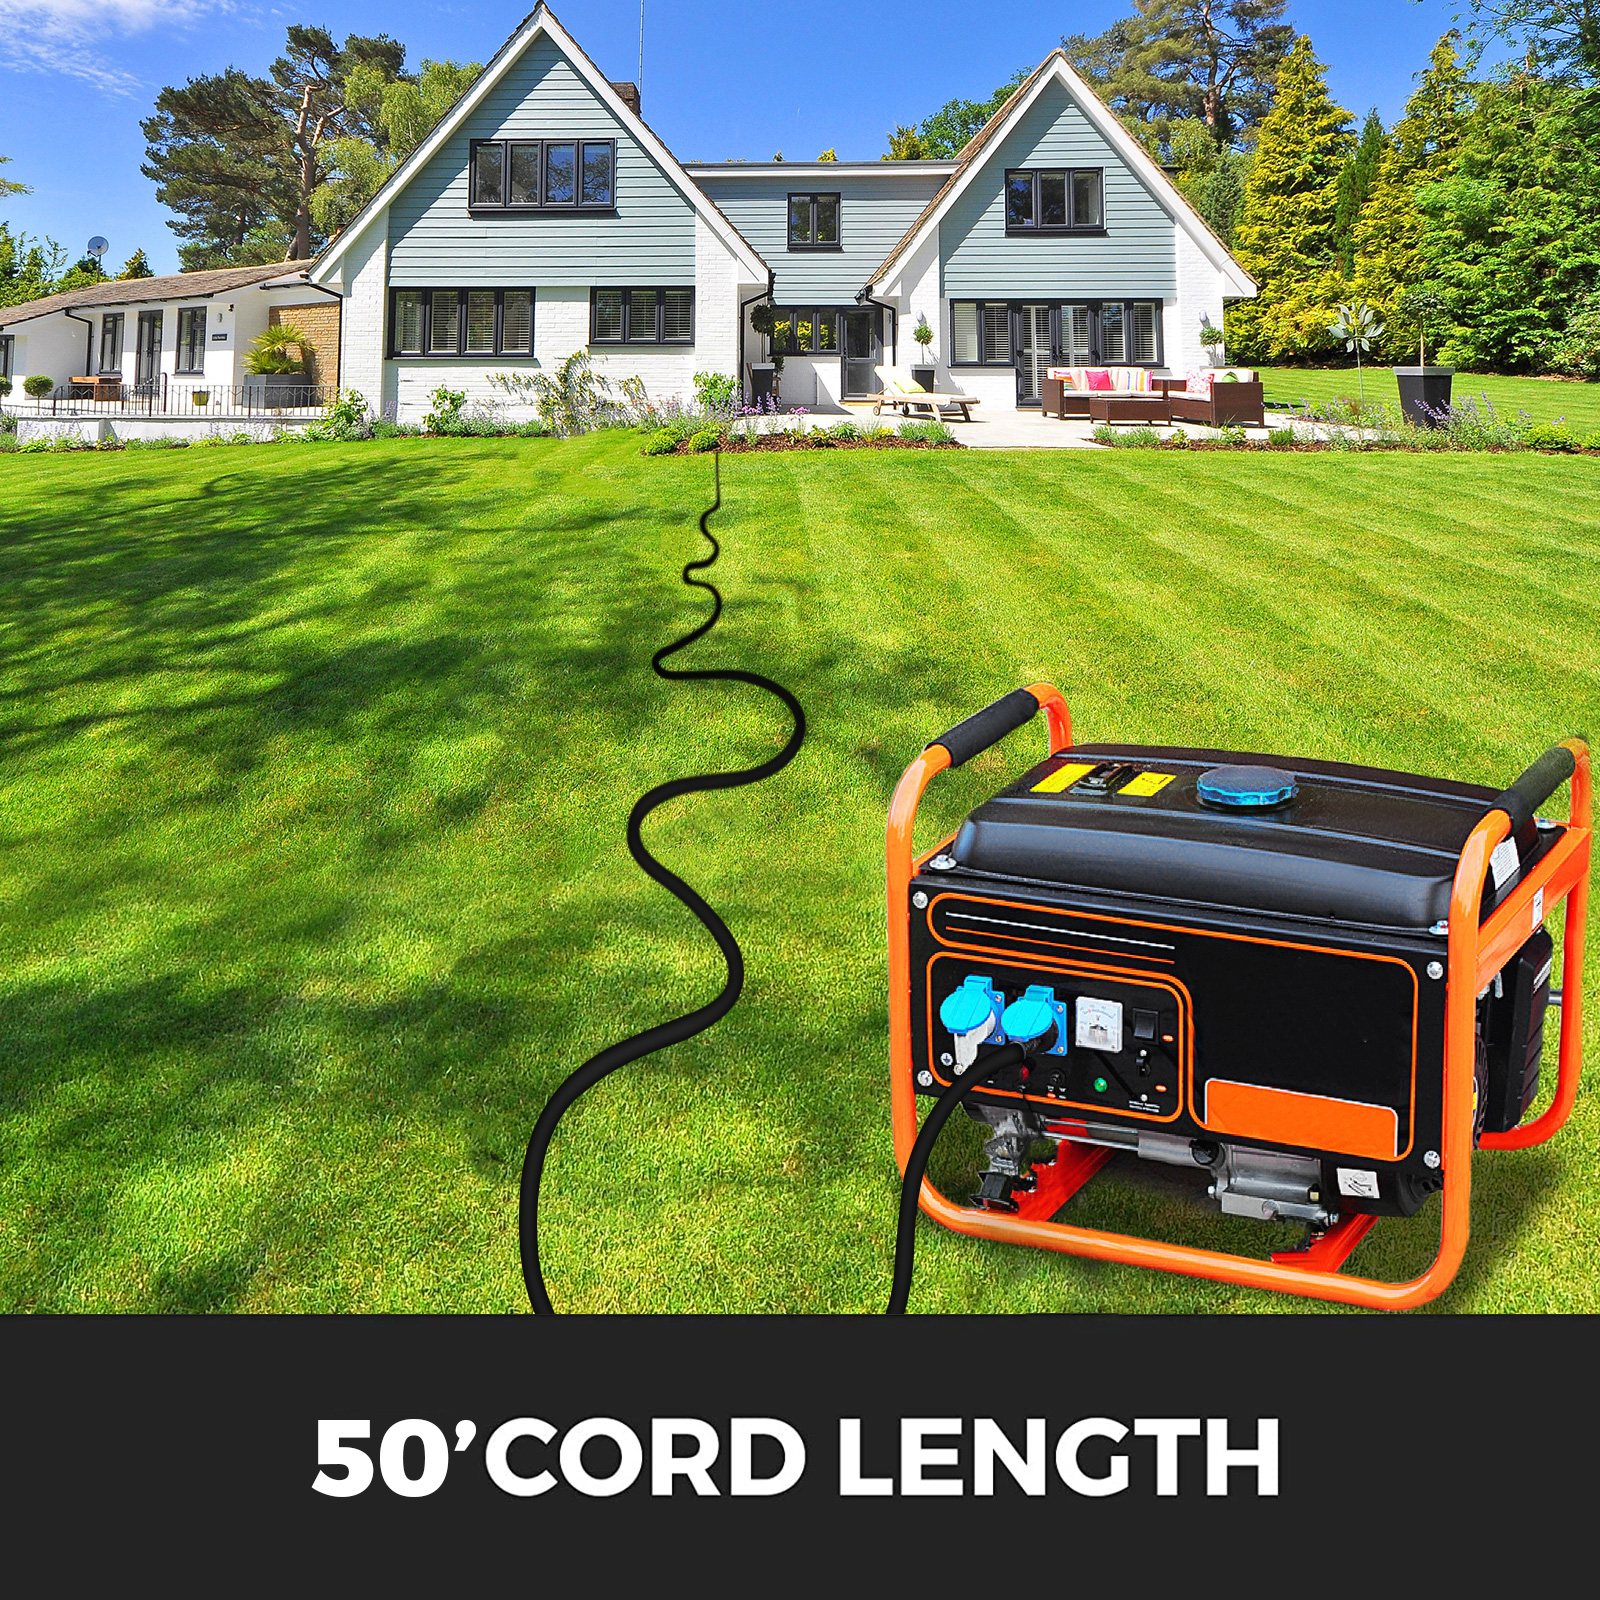 Generator-Extension-Cord-10-50ft-10-4-Power-Cable-30A-Adapter-Plug-Copper-Wire miniature 76